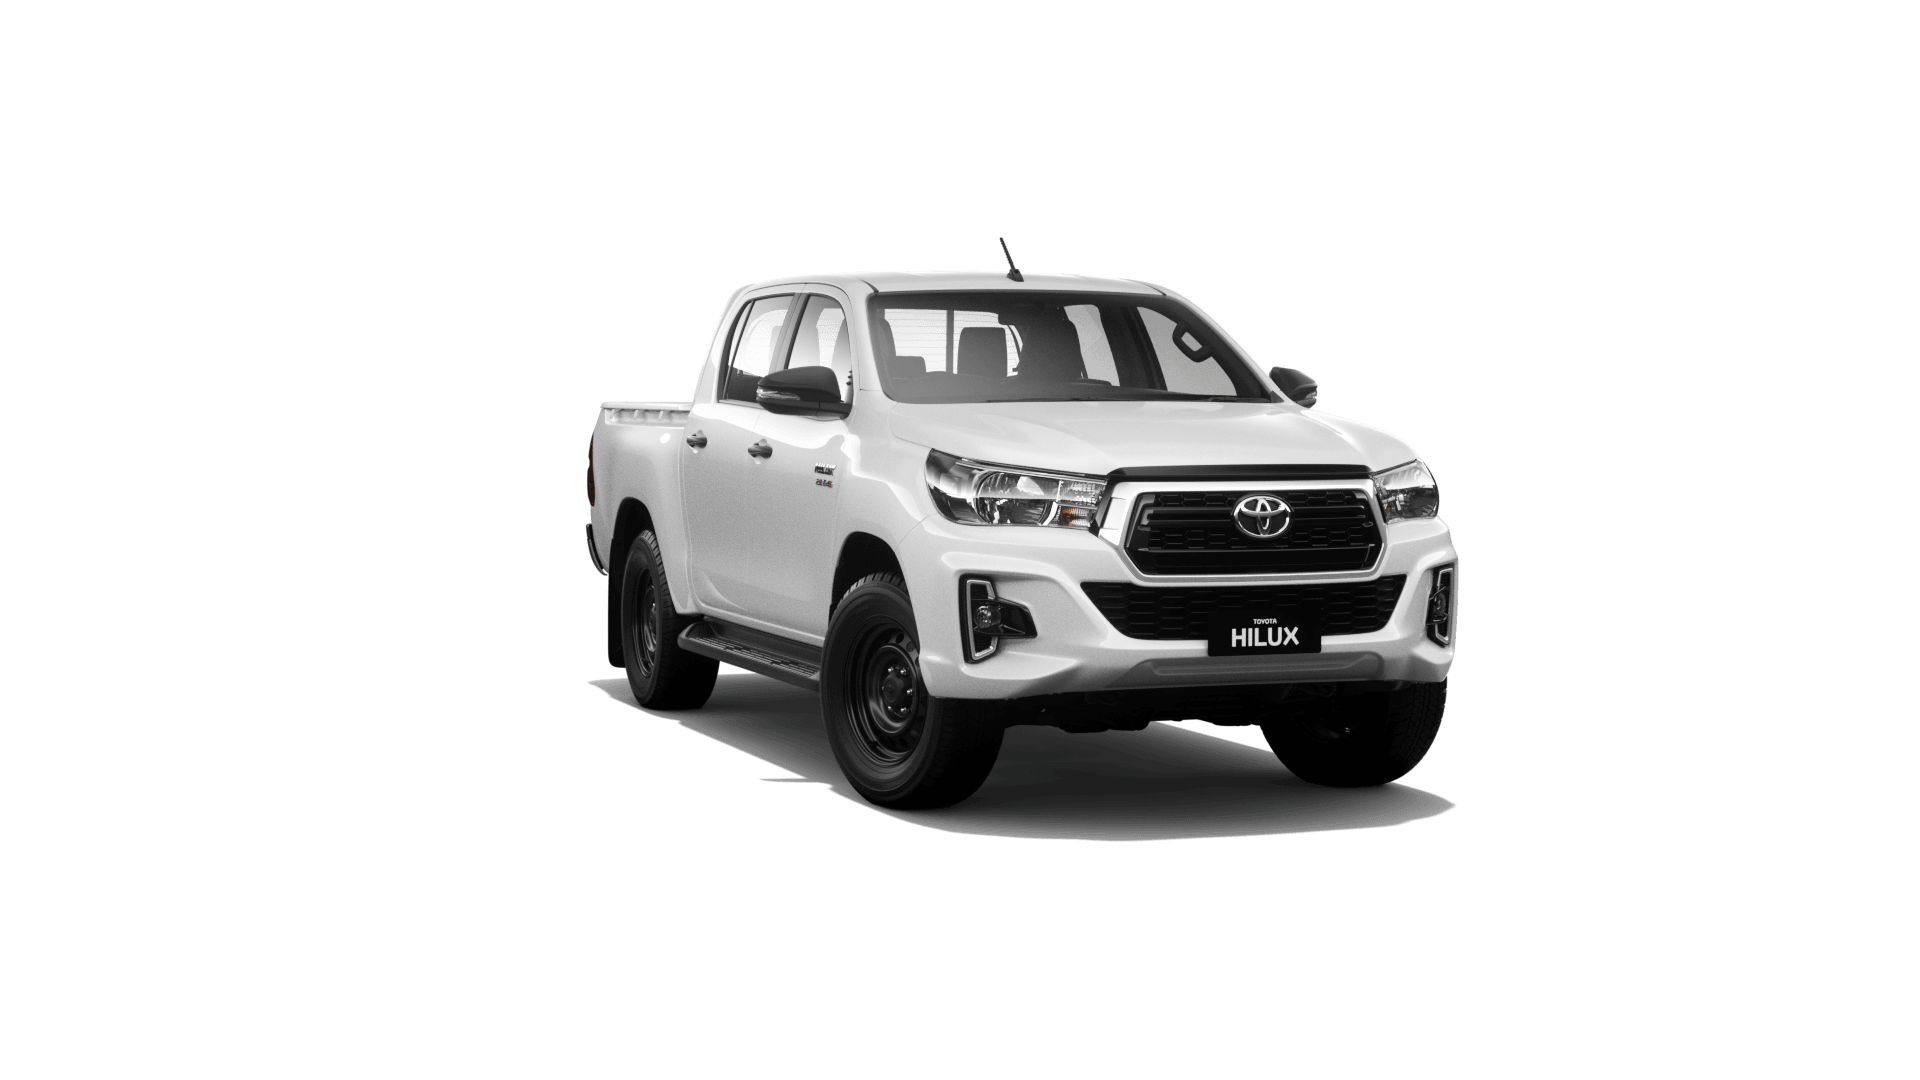 HiLux 4x4 SR <span>Double-Cab Pick-Up | Turbo-Diesel</span>